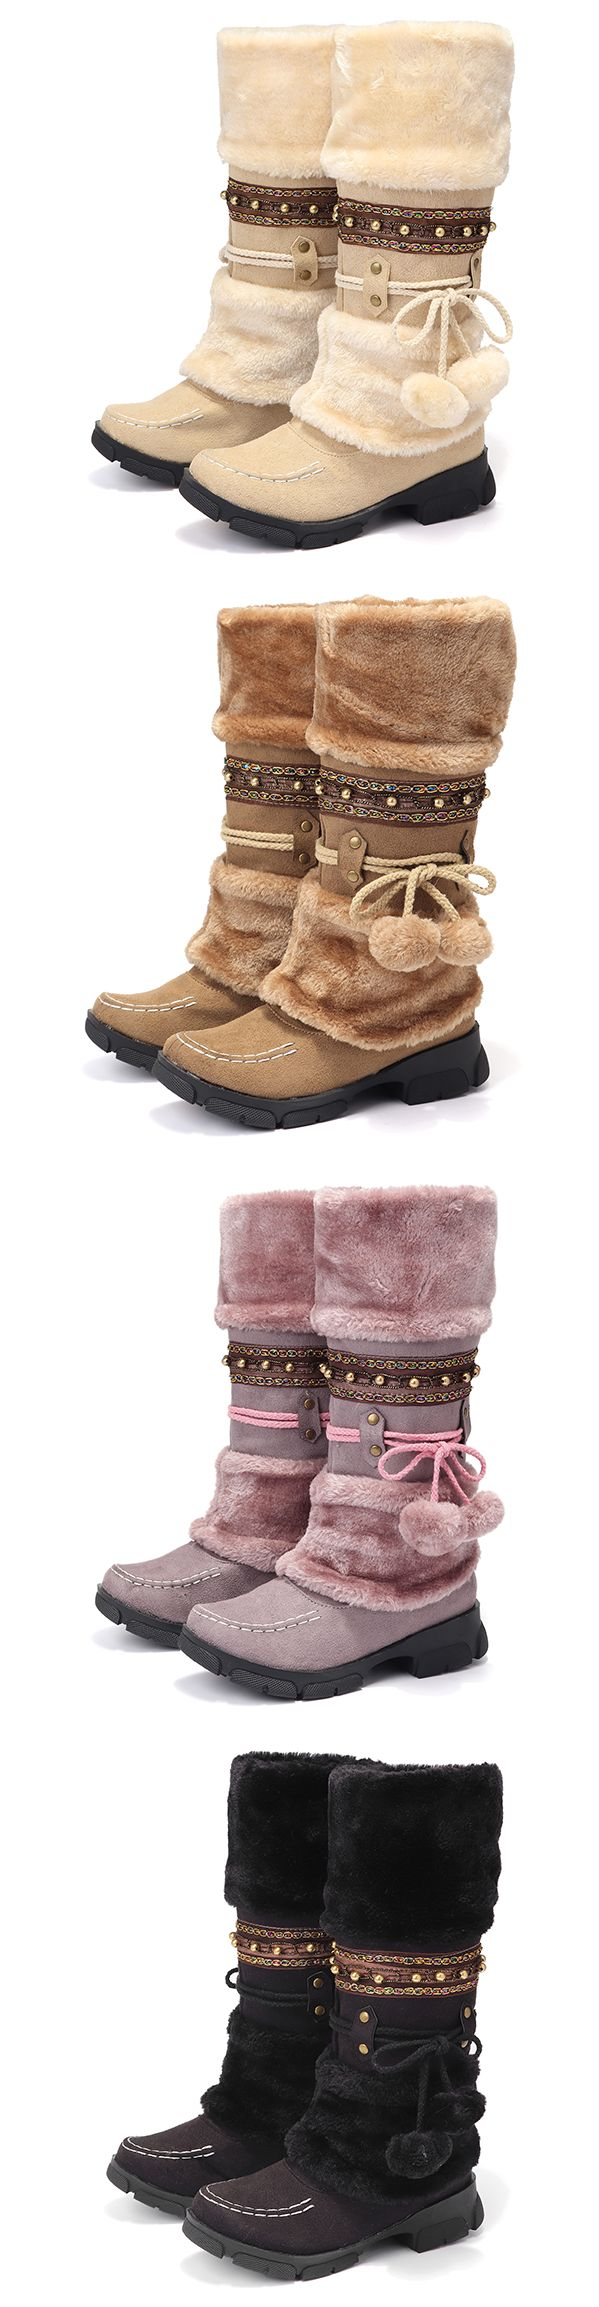 So Cute!Find diffirent kinds of shoes,boots and winter high heel on Newchic,keep yourself in warm but stylish everyday.Don't miss the big deals on Newchic.Shop with me today.